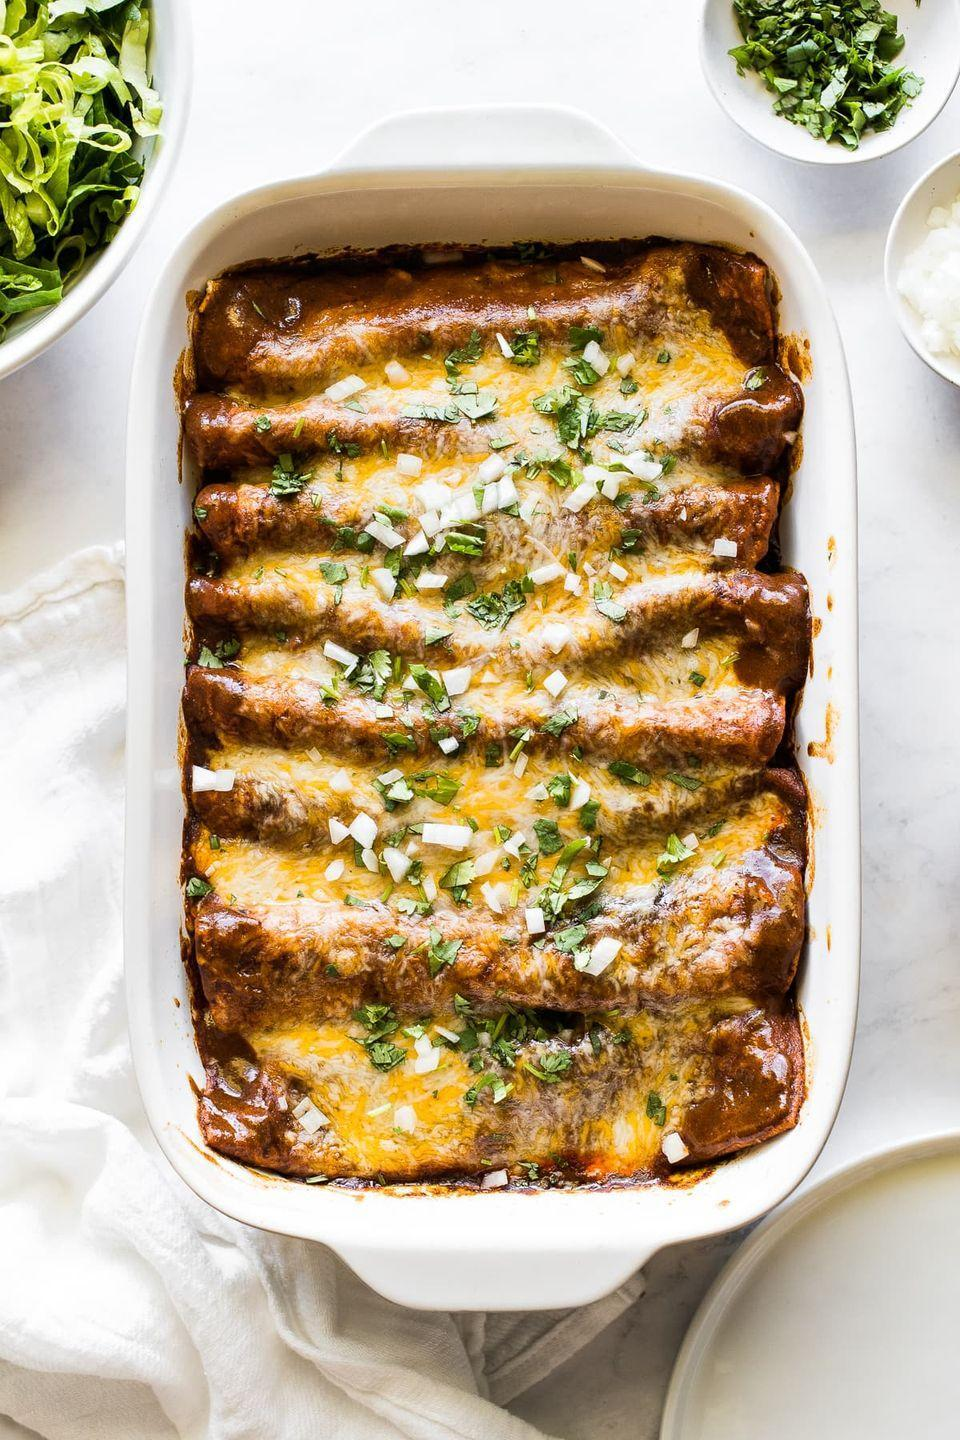 "<p>Stuffed with a ground beef, onion and garlic filling, then smothered in homemade sauce, these enchiladas make the best weeknight dinner (with tasty leftovers!).</p><p><em><a href=""https://www.isabeleats.com/beef-enchiladas/"" rel=""nofollow noopener"" target=""_blank"" data-ylk=""slk:Get the recipe from Isabel Eats »"" class=""link rapid-noclick-resp"">Get the recipe from Isabel Eats »</a></em></p>"